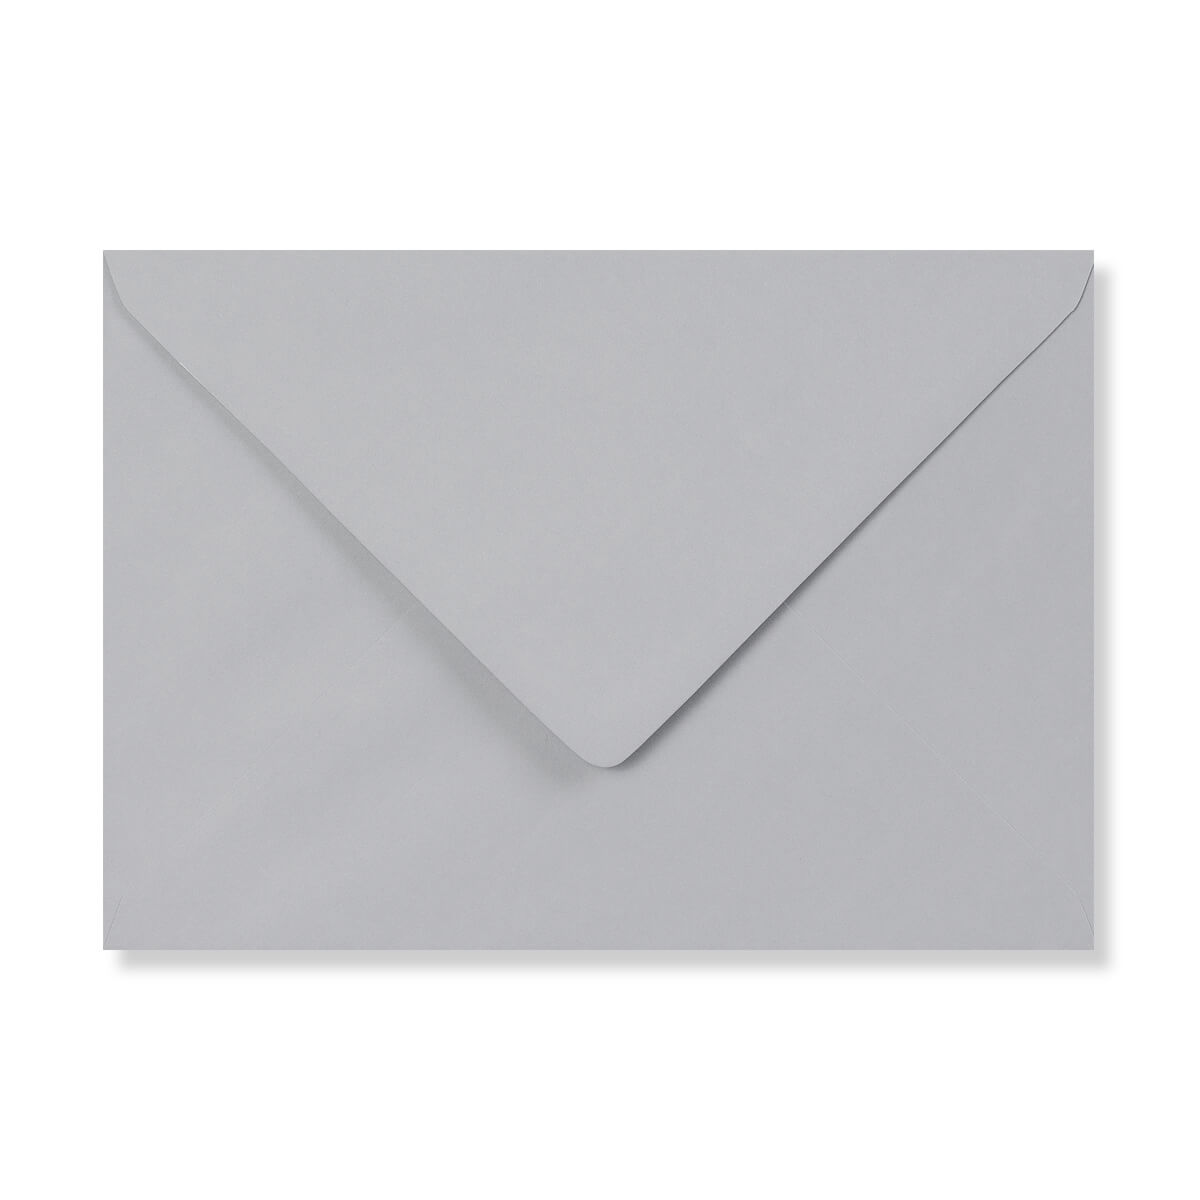 PALE GREY 152 x 216mm ENVELOPES 120GSM